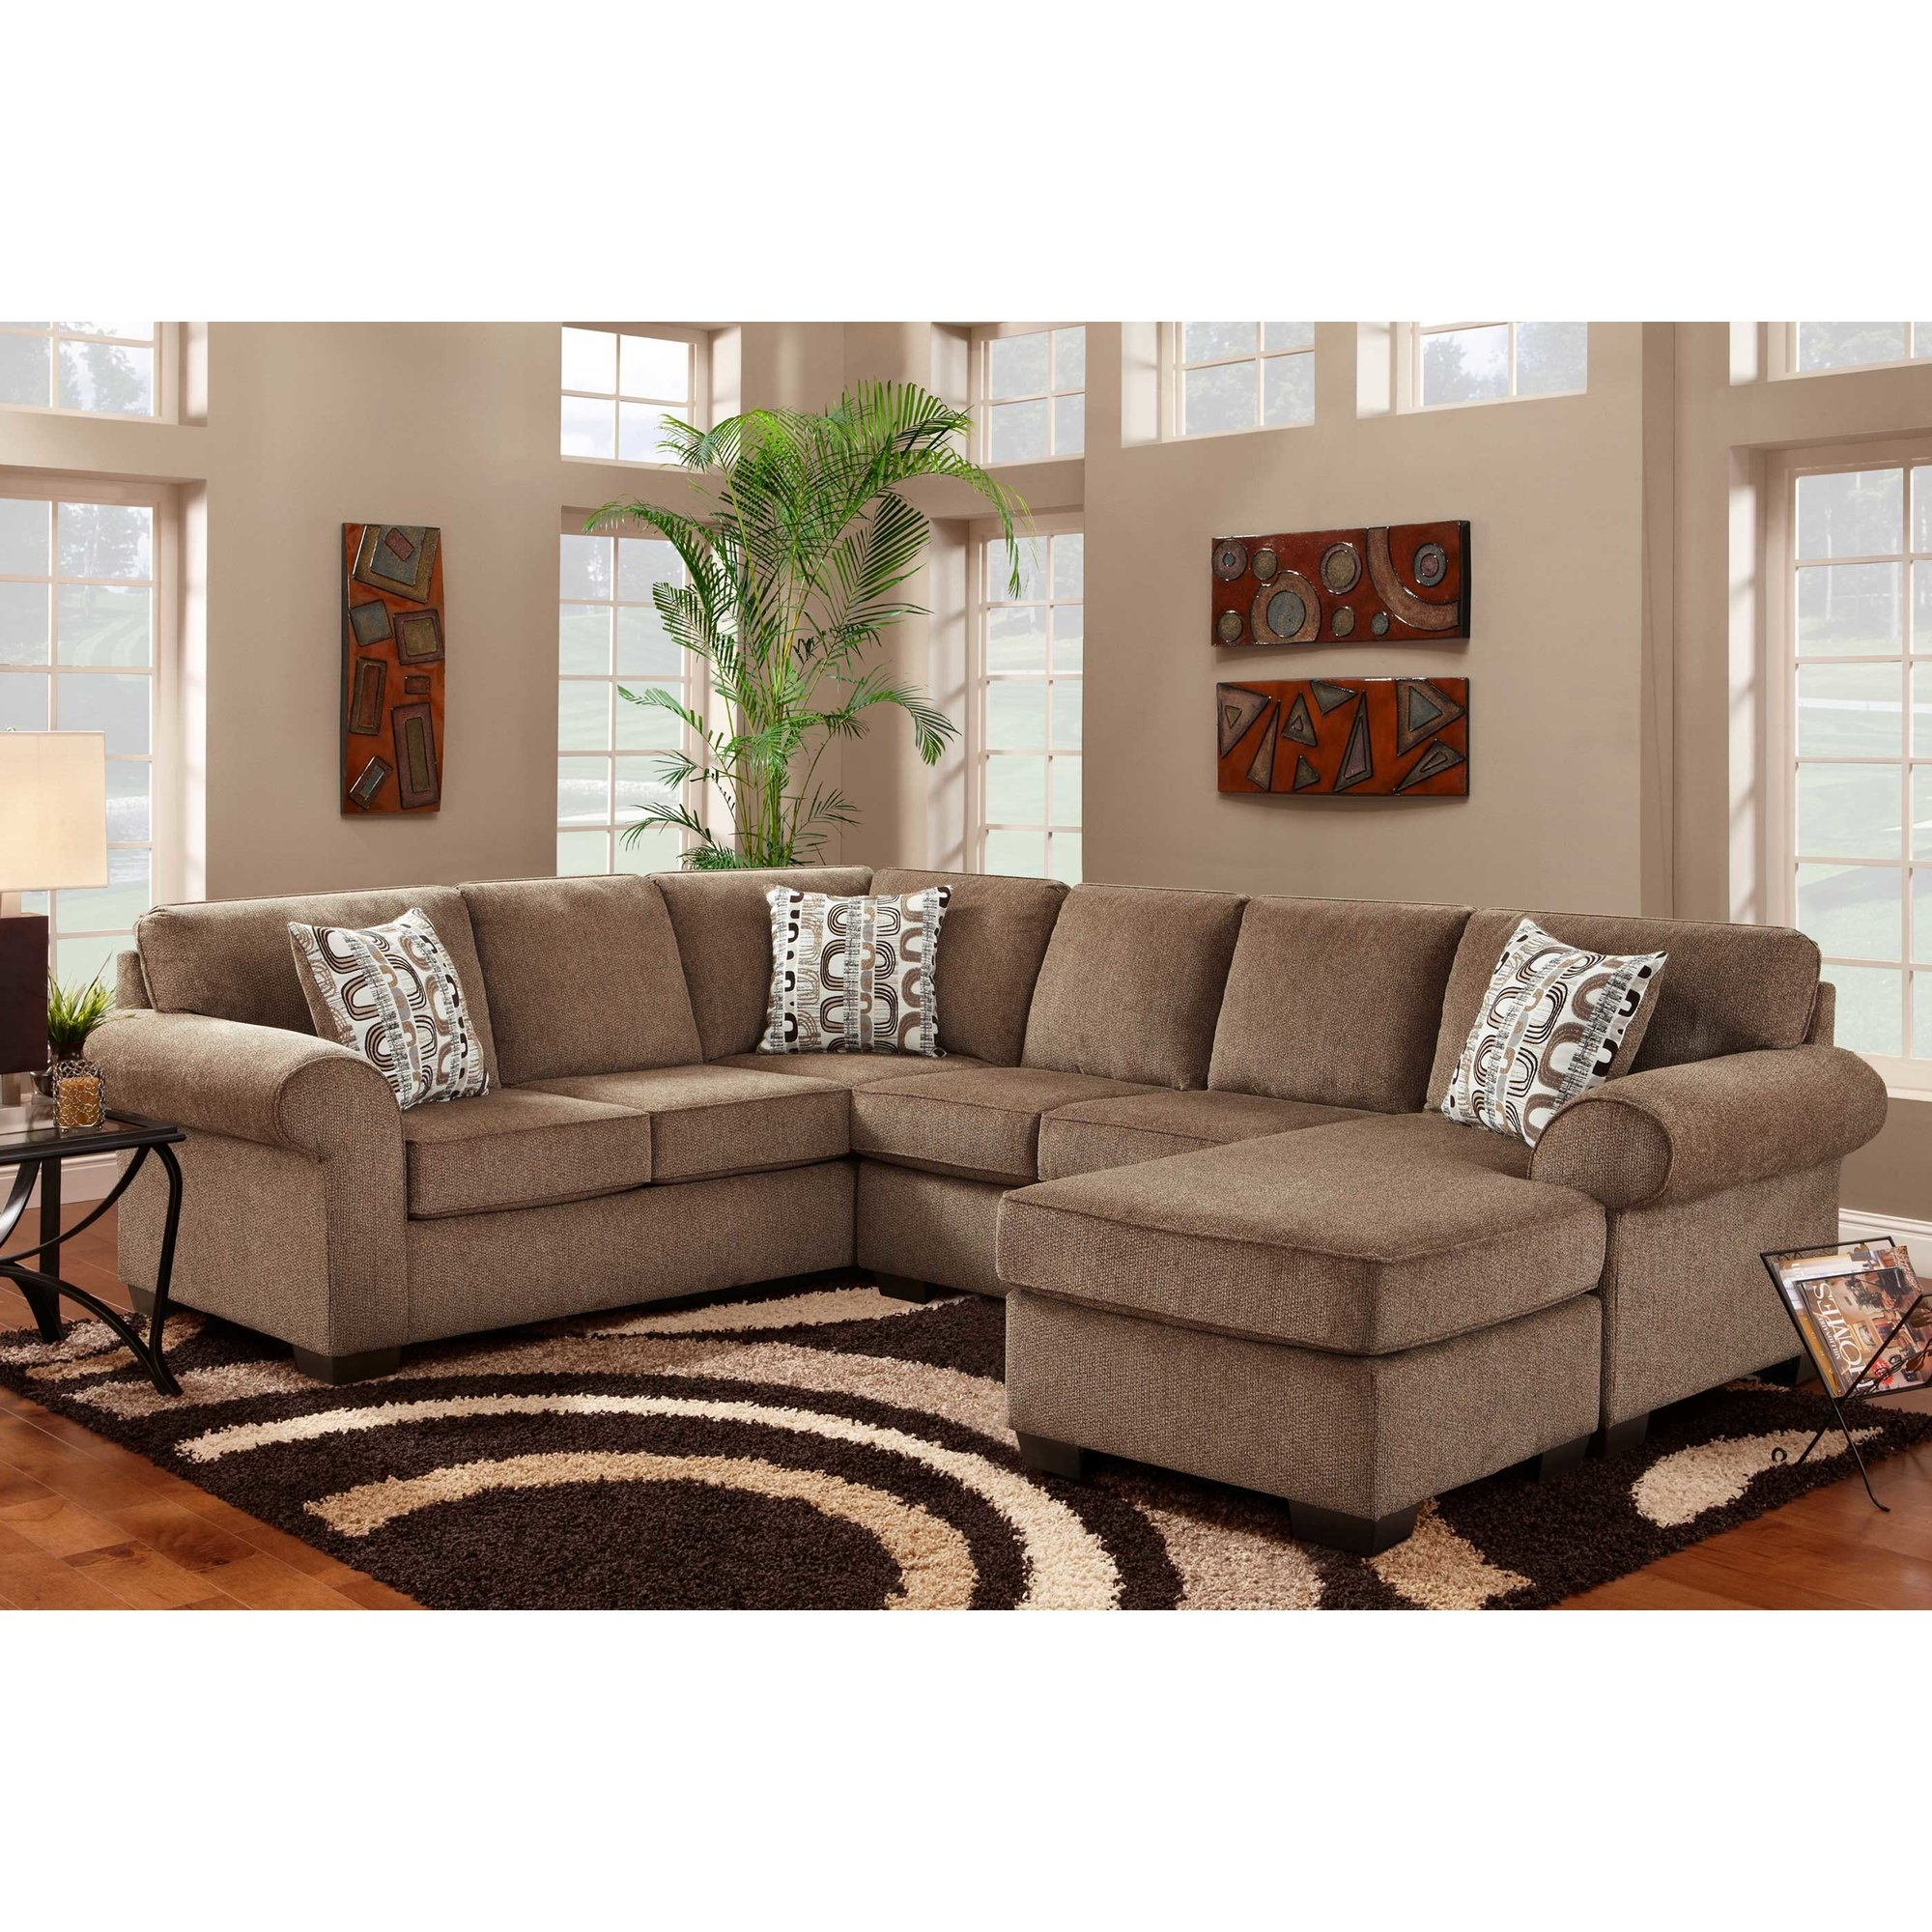 Chenille Sectional Sofas Youll Love Wayfair Intended For Chenille Sectional Sofas (Image 4 of 15)